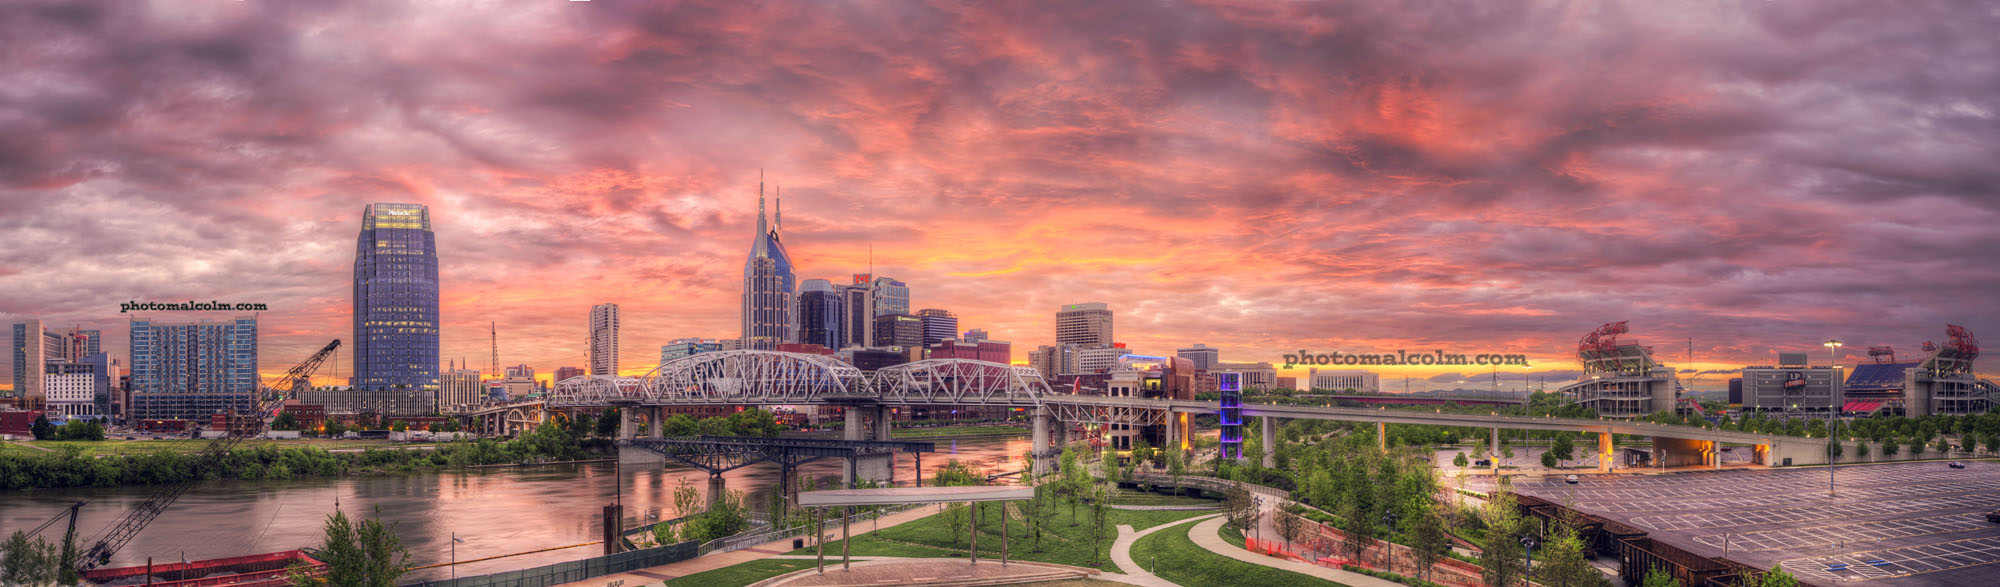 Nashville Sunset Pano